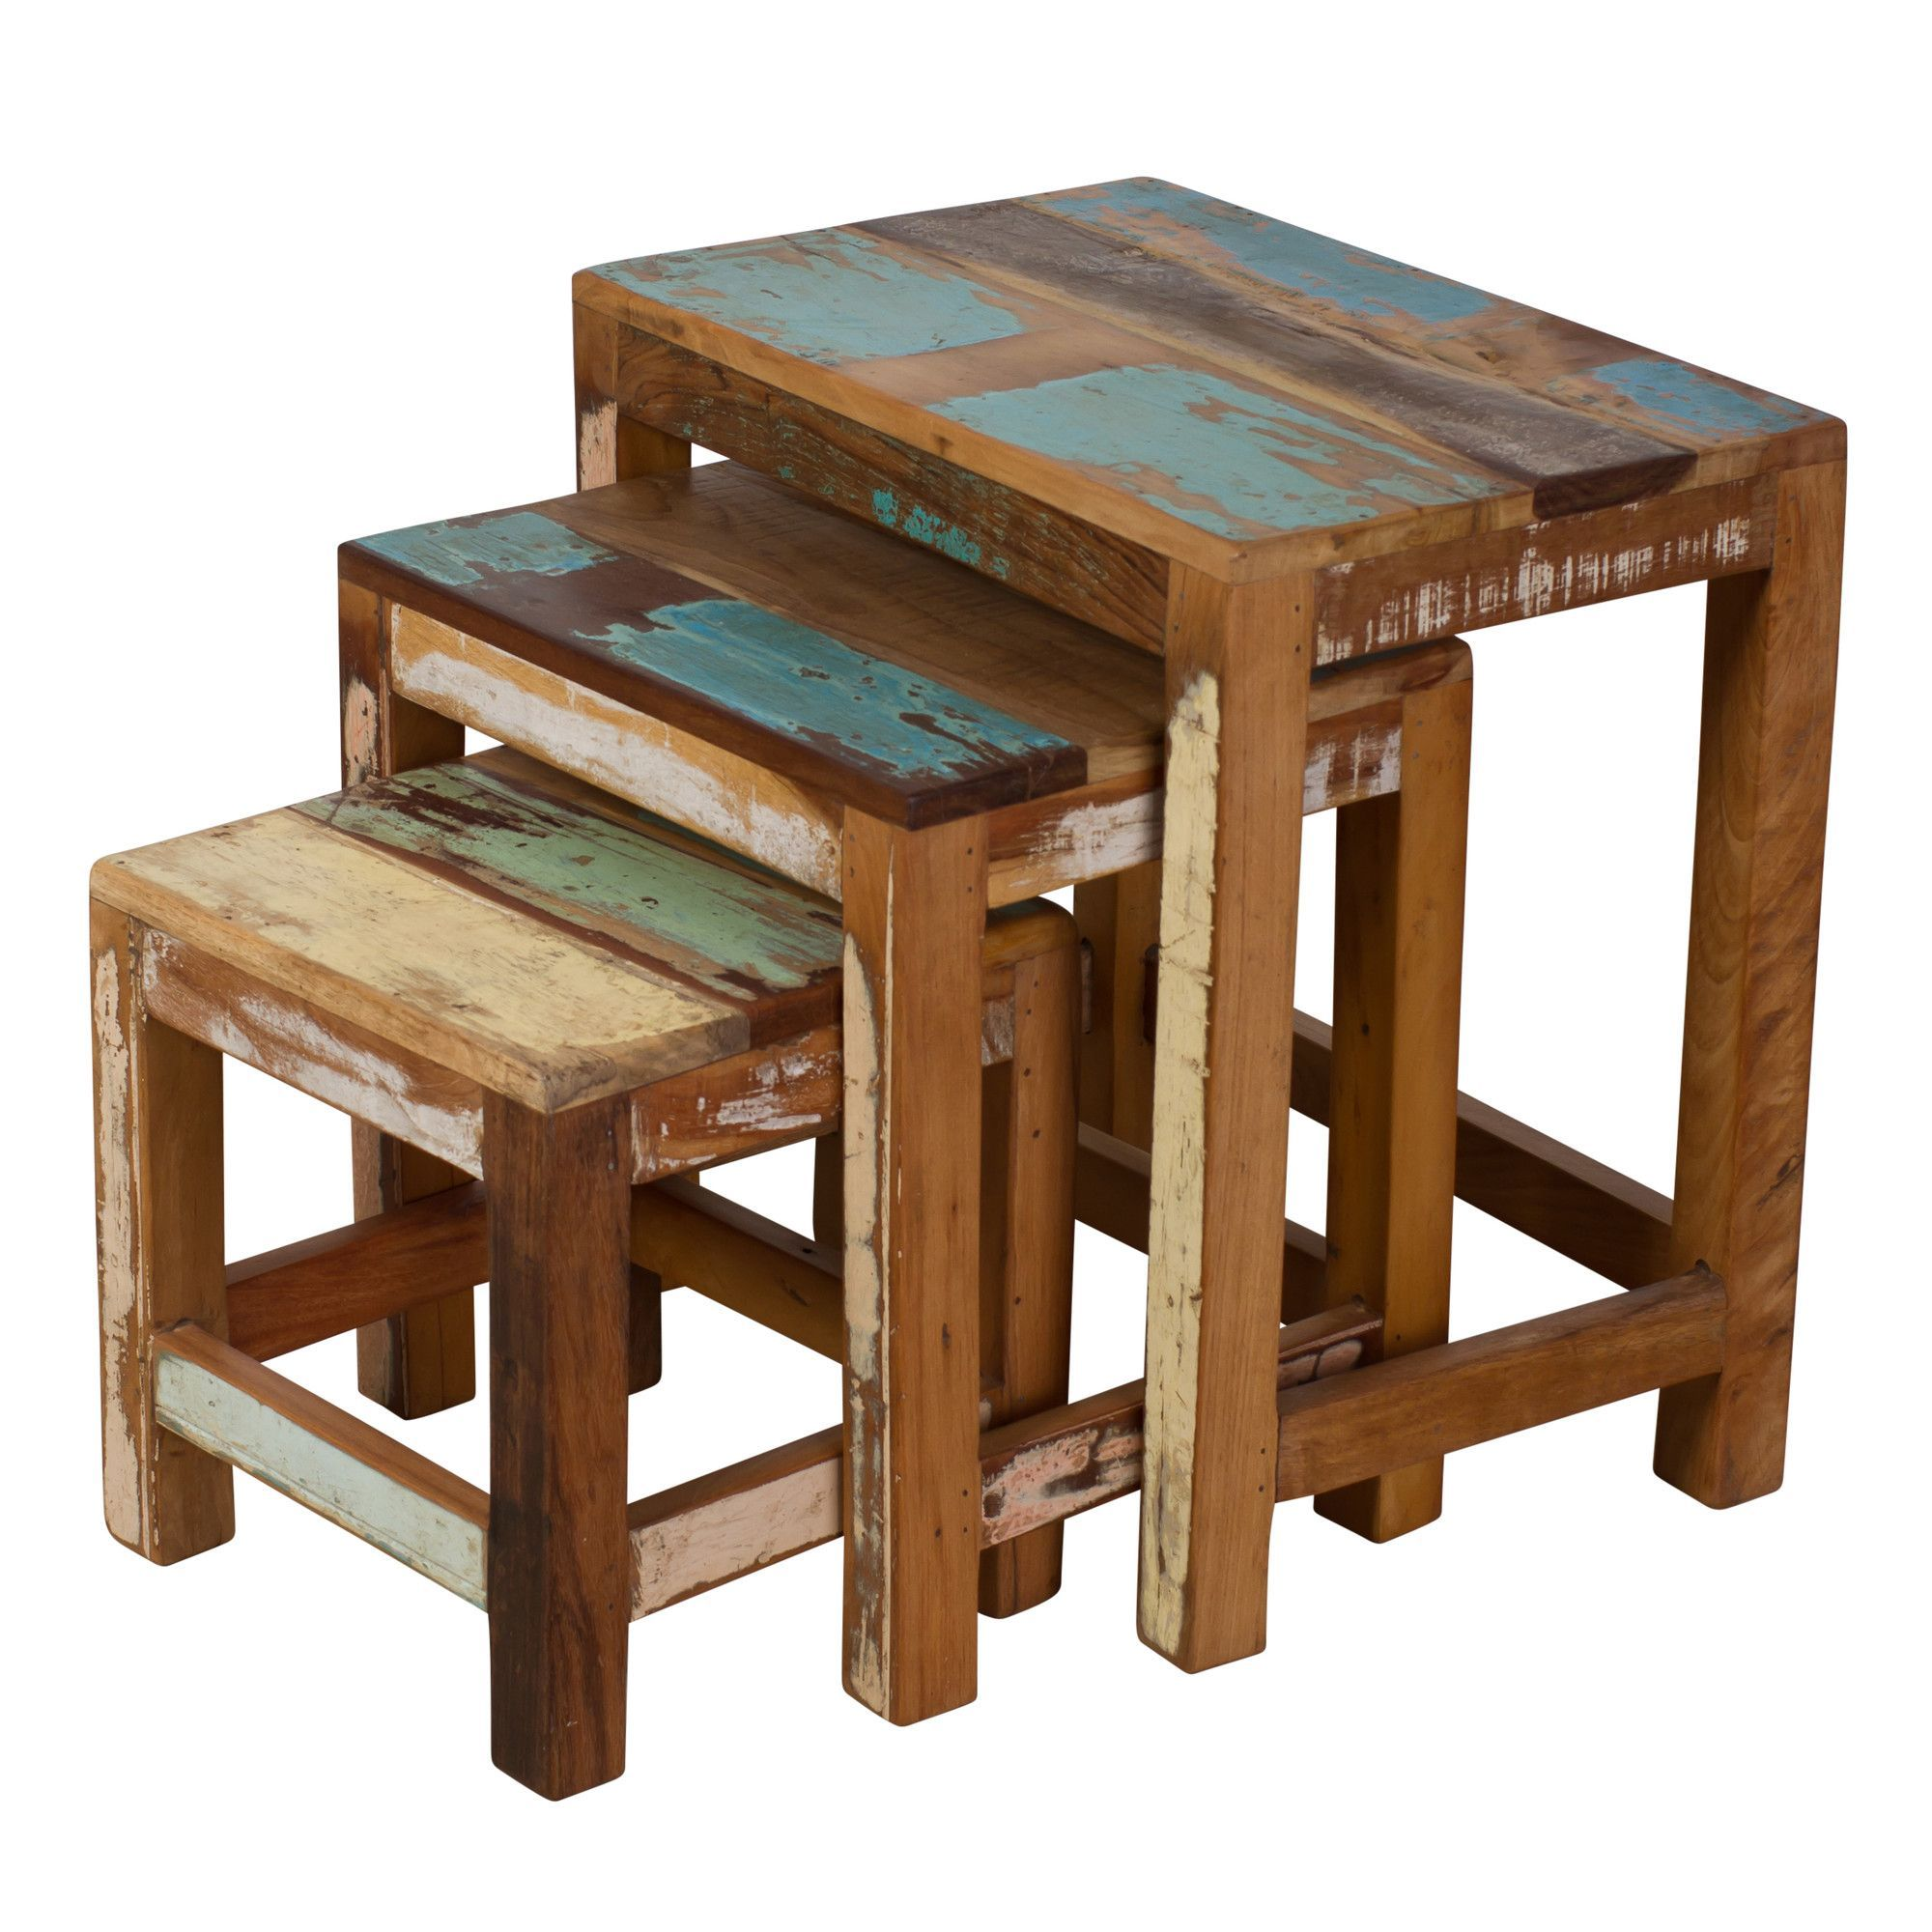 Saraghna 3 Piece Nesting Table Set  sc 1 st  Pinterest & Saraghna 3 Piece Nesting Table Set | Pallets Paint ideas and Pallet ...